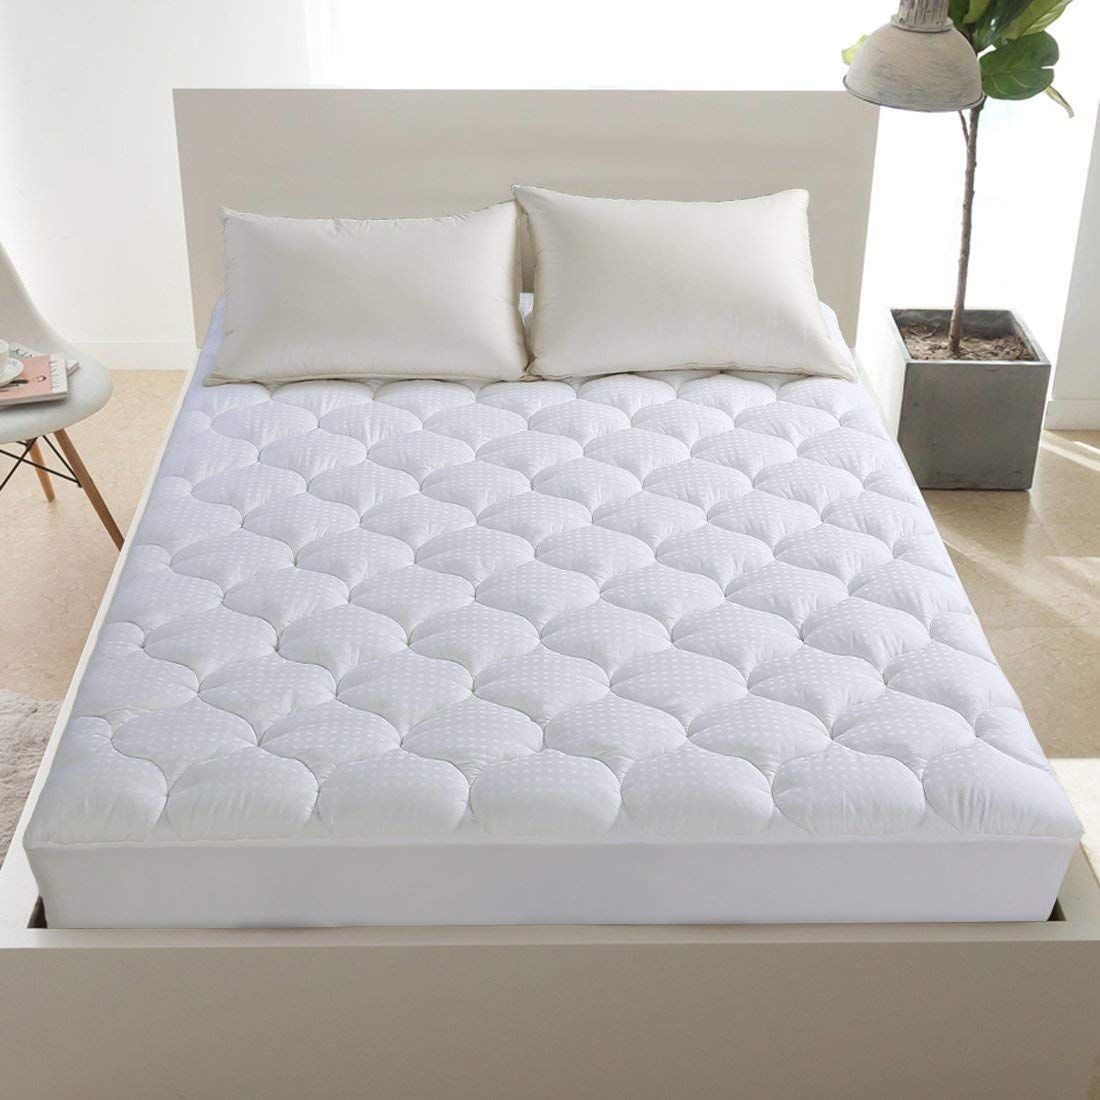 Healthier Sleep Filled With Snow Down Alternative Fill A State